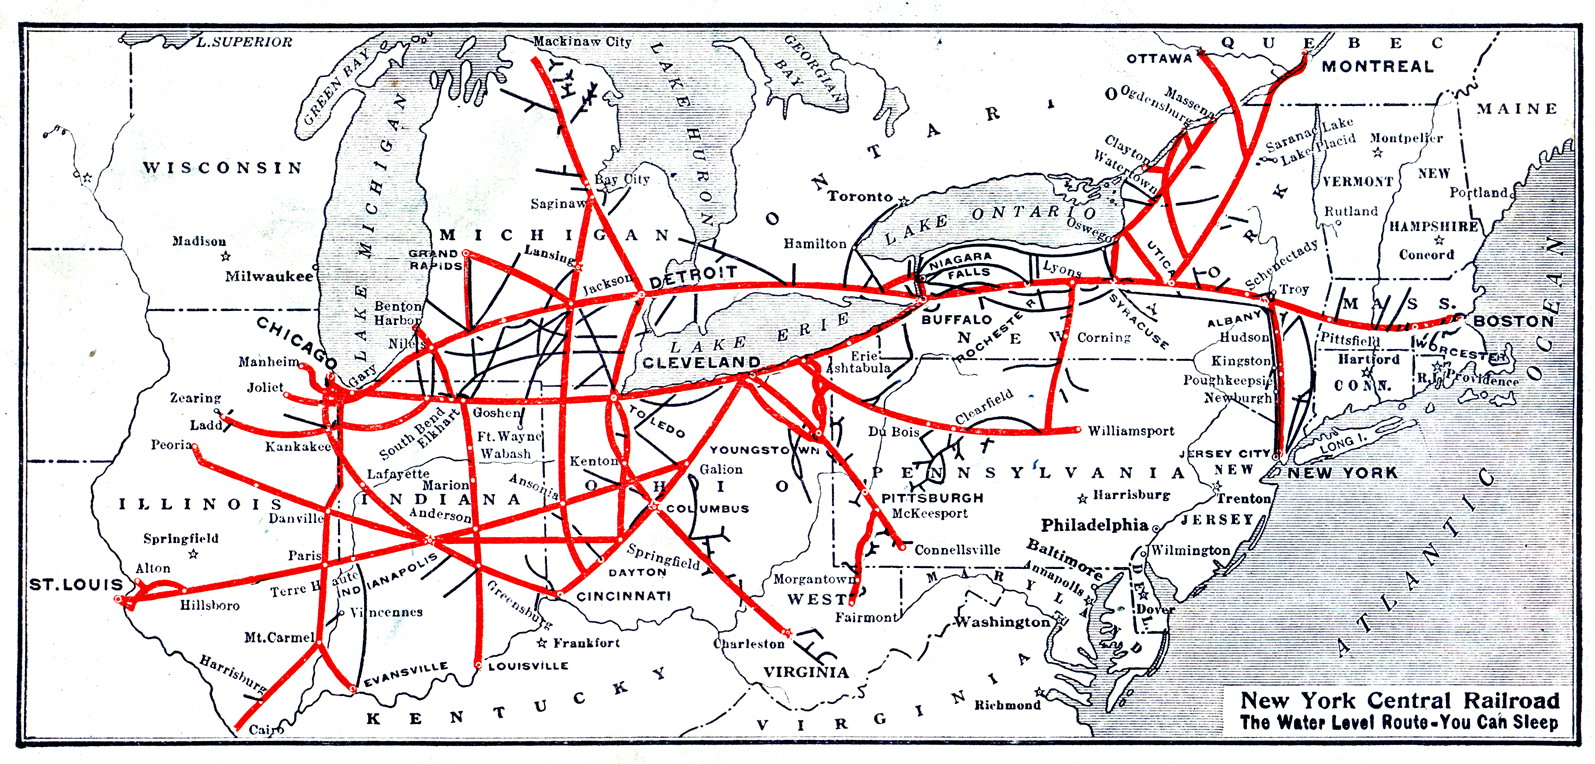 Map Of New York Rail System.File New York Central Railroad System Map 1926th Jpg Wikimedia Commons